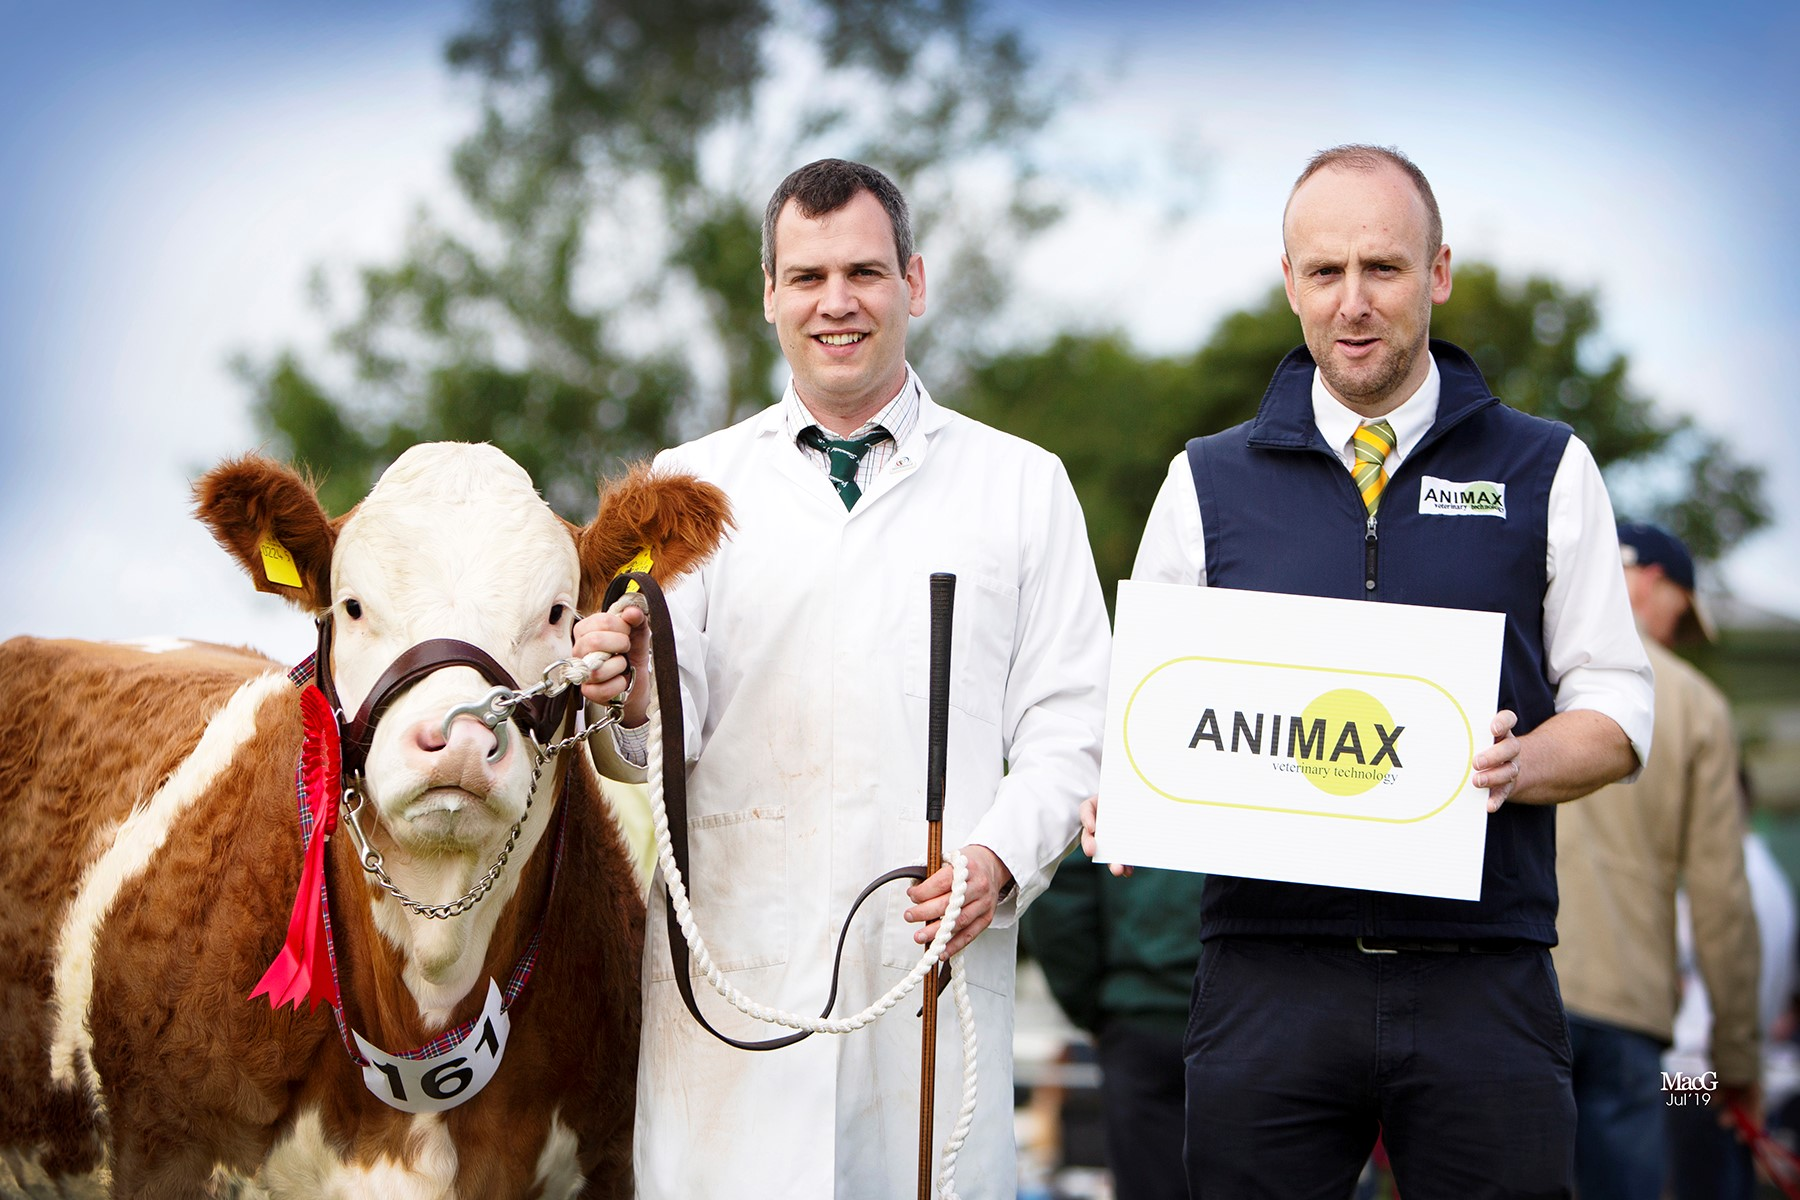 Shane McDonald, Tempo, exhibited Coolcran Lady Jasmine, winner of the junior heifer class. Included is sponsor Neill Acheson, Animax.